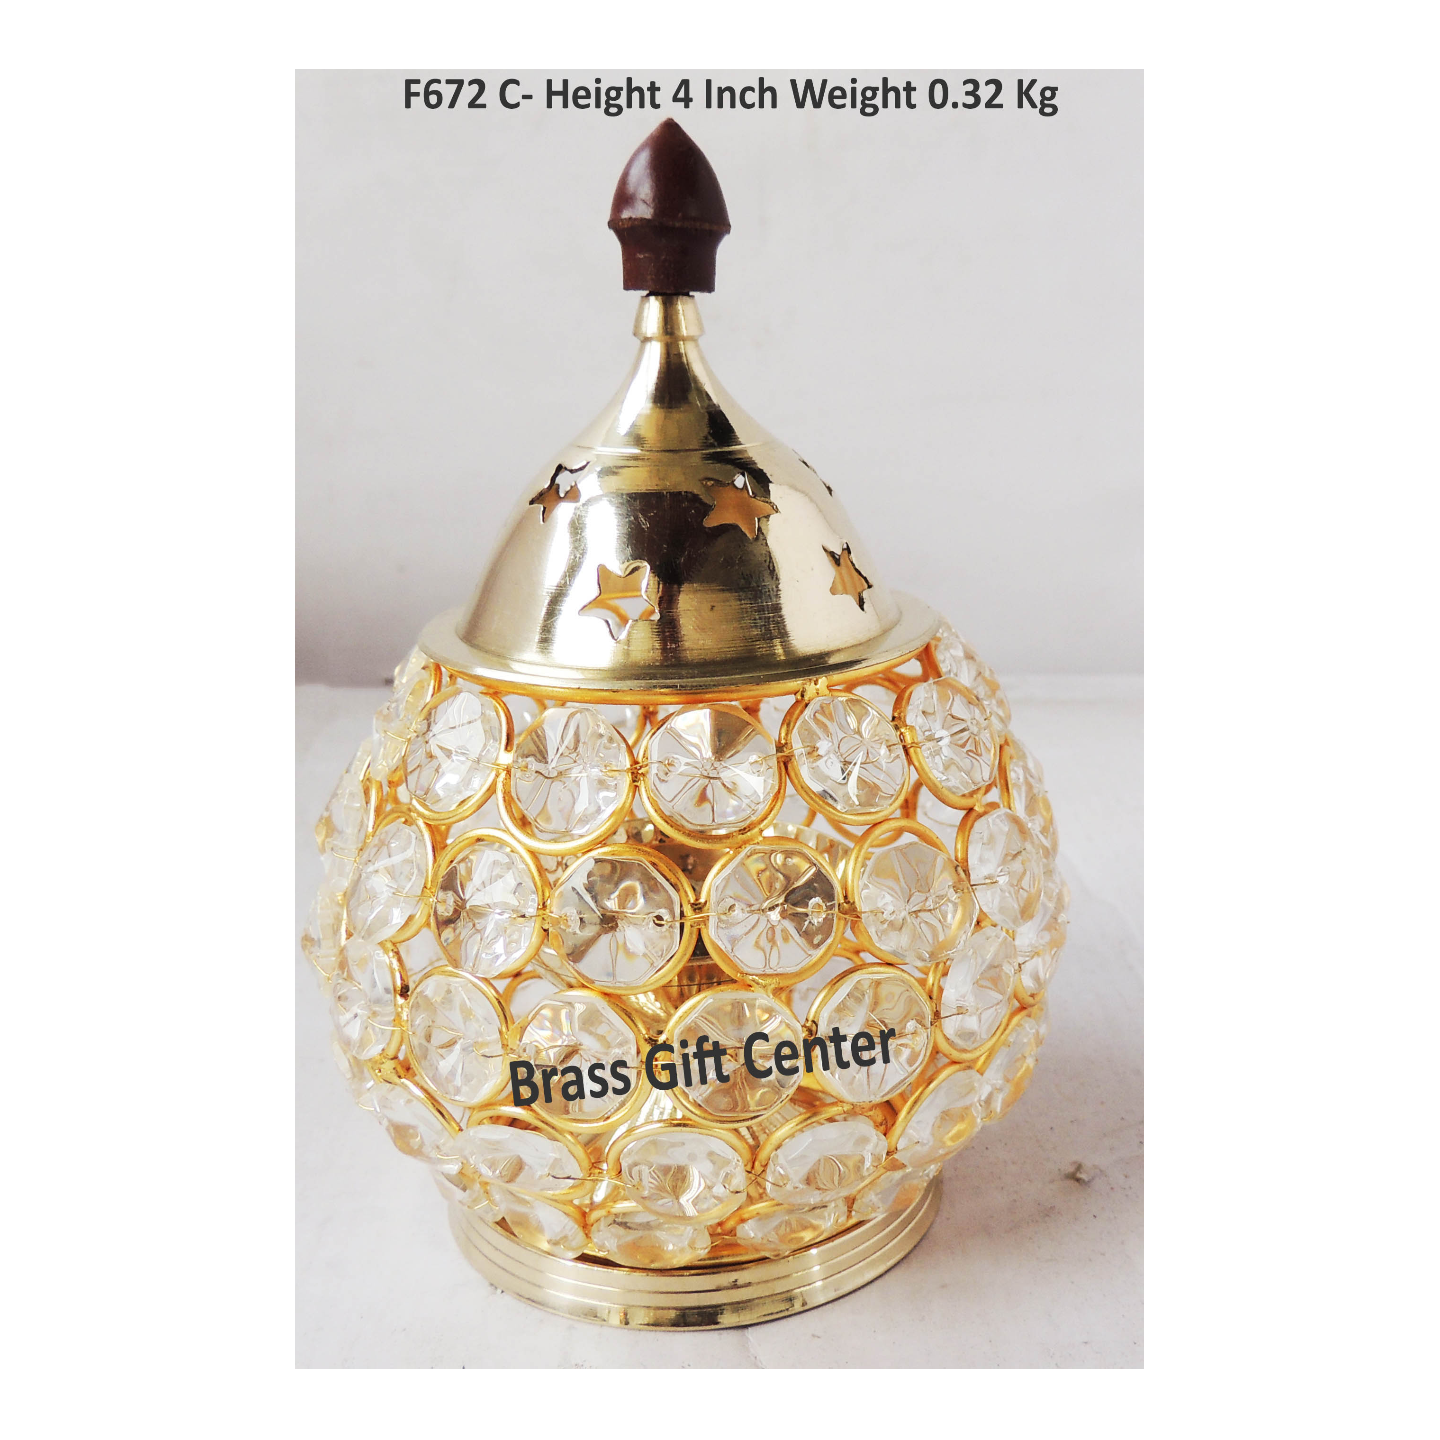 Brass Oil Lamp Deepak With Crystal Beads Height 6.2 Inch (F672 C)